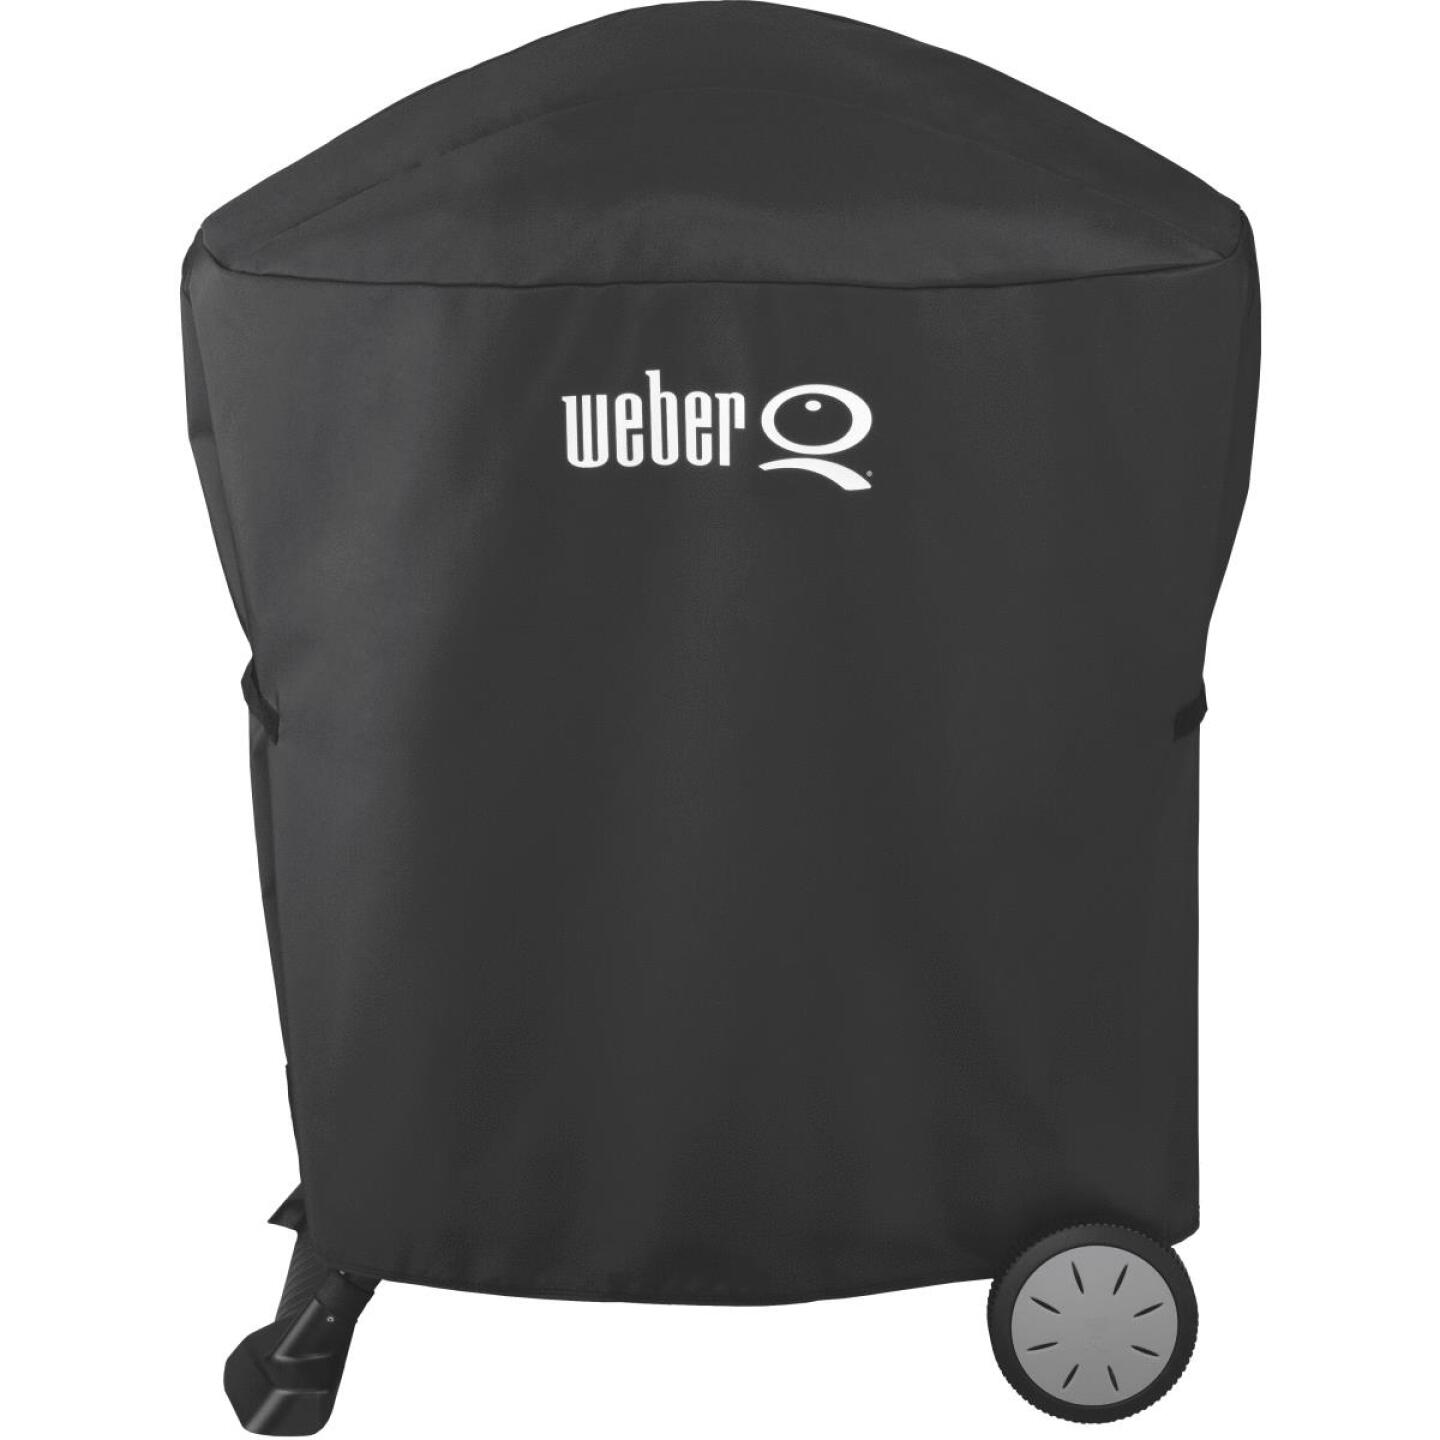 Weber Q 100/1000 & Q 200/2000 Q Cart 32 In. Black Vinyl Grill Cover Image 5